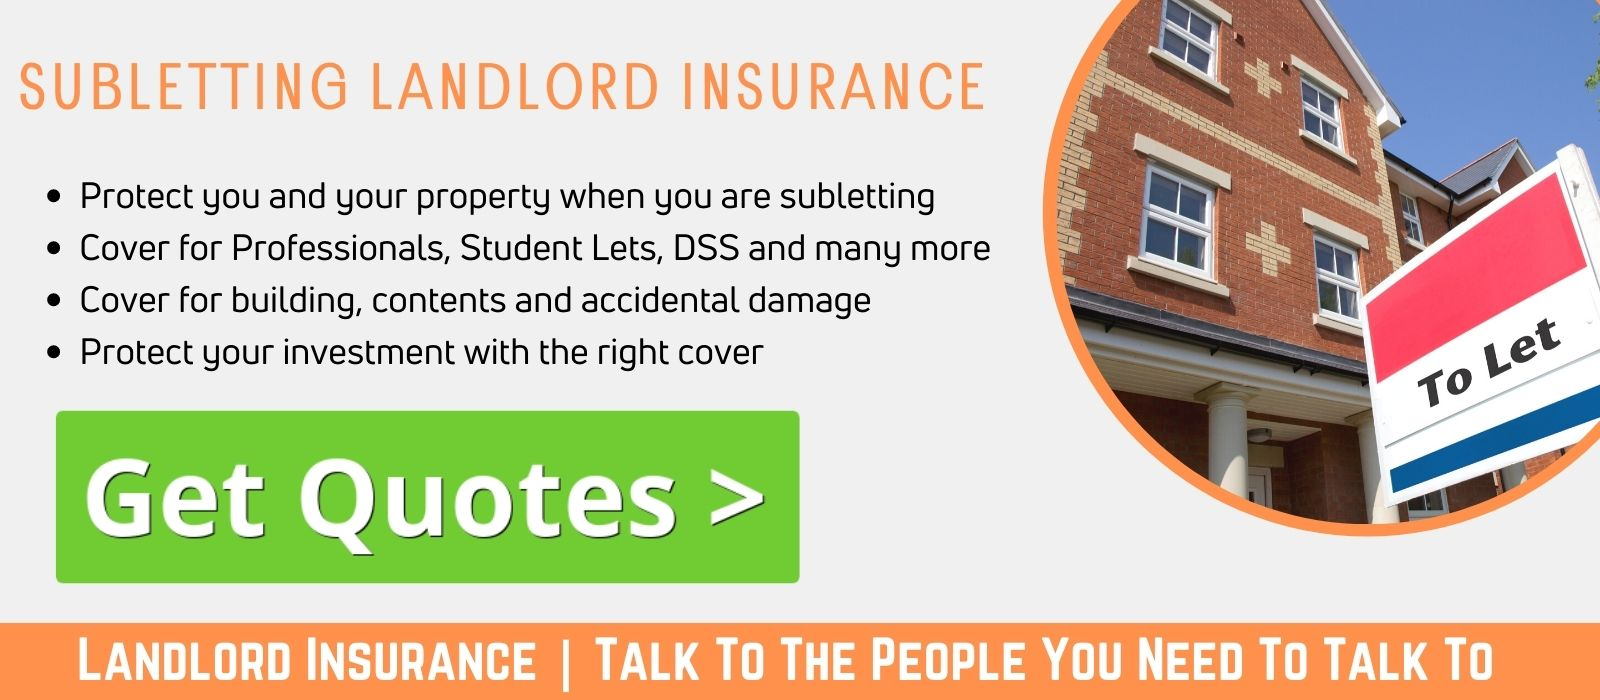 Subletting landlords insurance cheaper than the rest at UKLI Compare